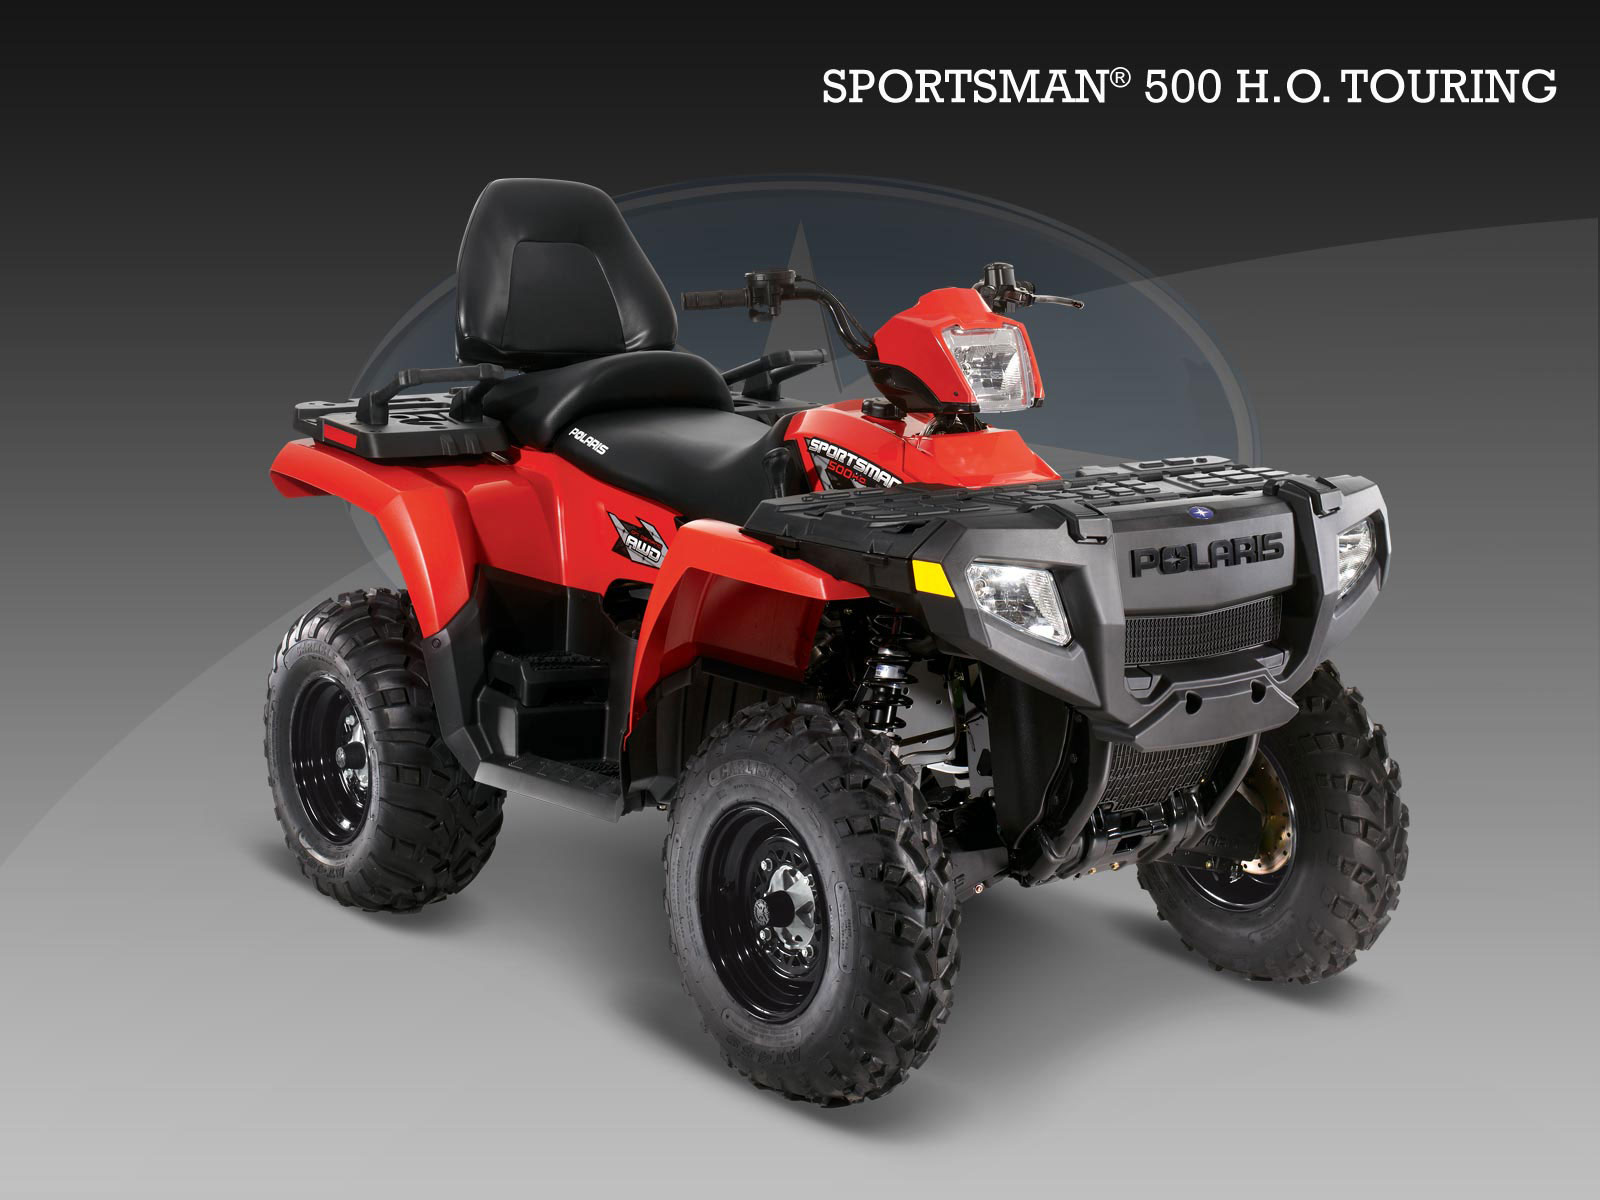 2010 polaris 500 ho touring. Black Bedroom Furniture Sets. Home Design Ideas